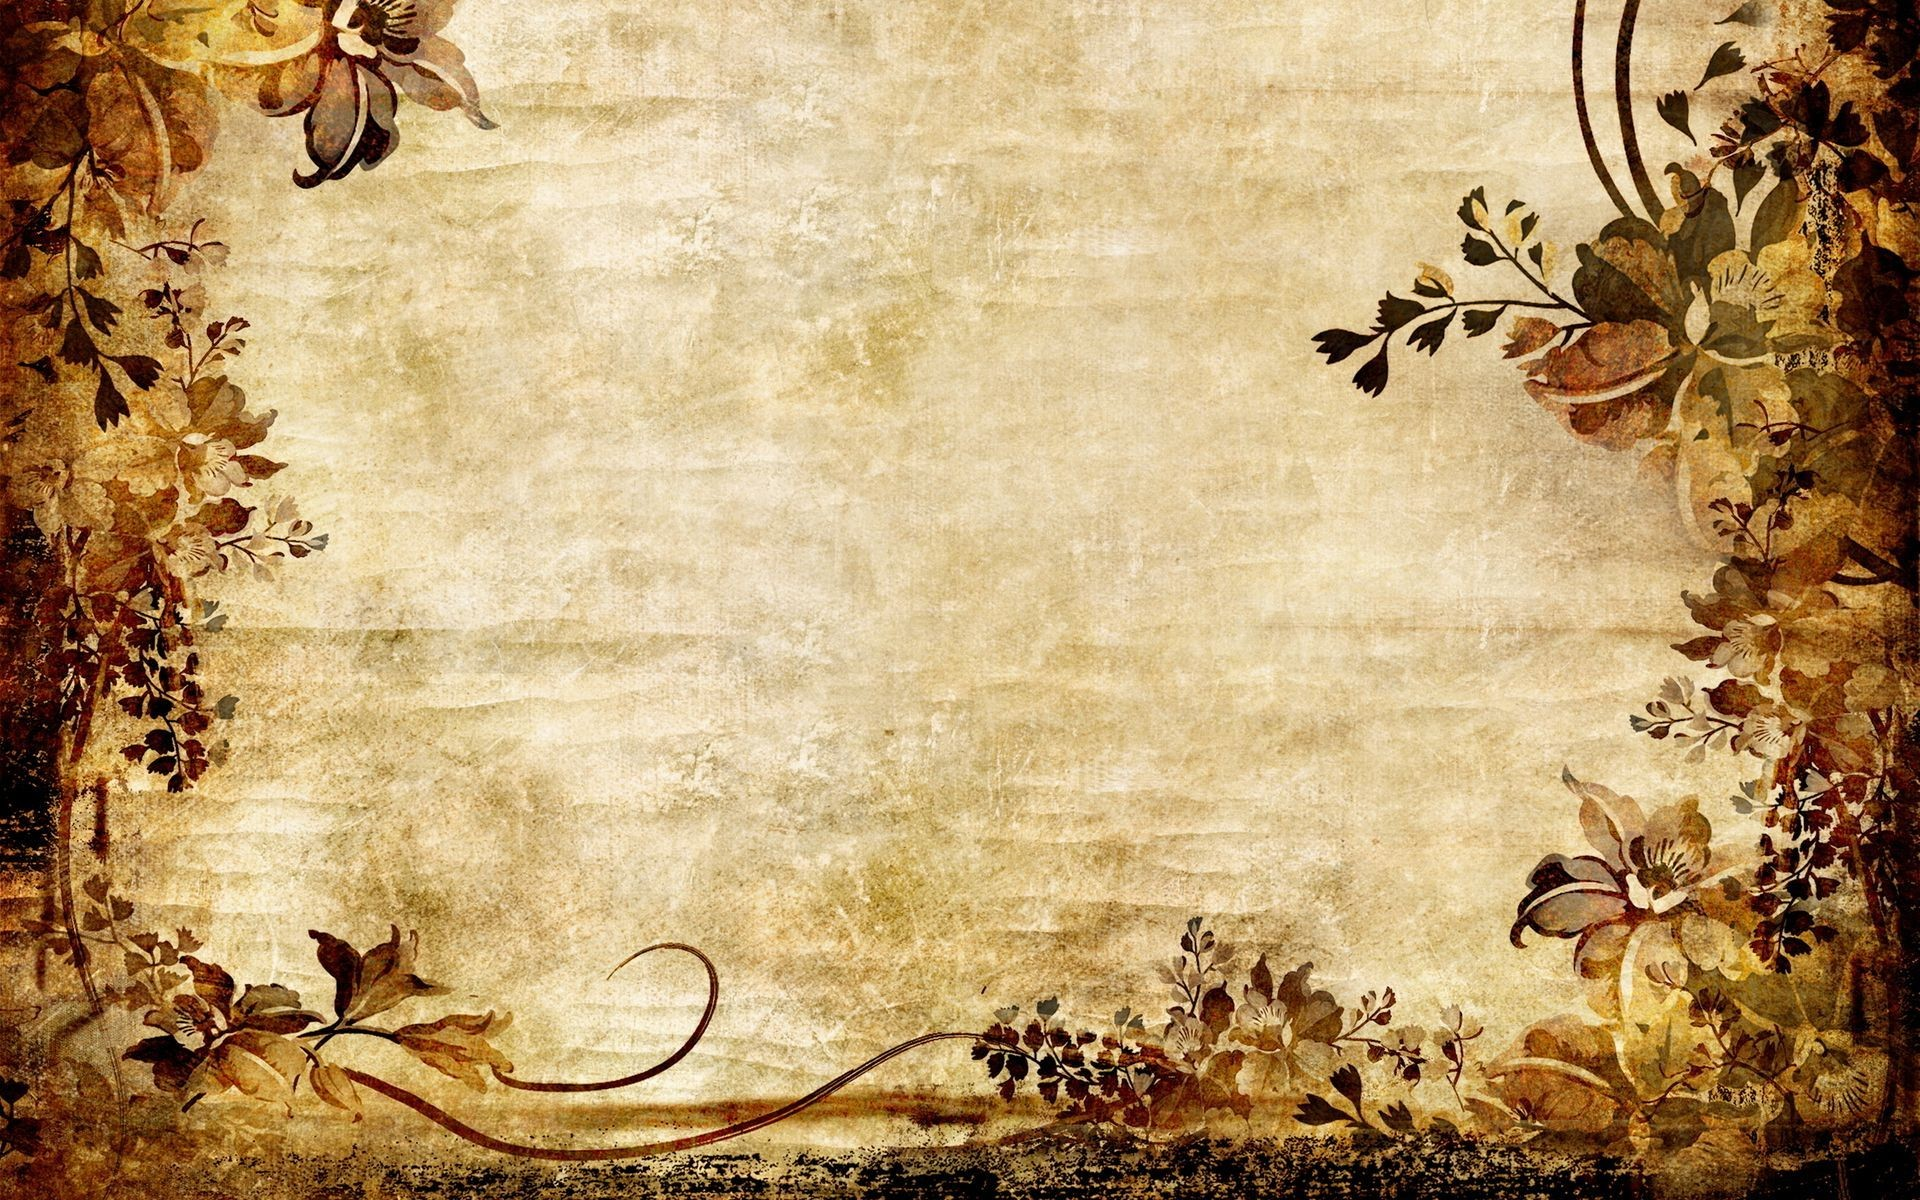 1920x1200, Abstract Vintage Wallpaper Hd Hd Wallpapers - High Resolution Vintage Background - HD Wallpaper